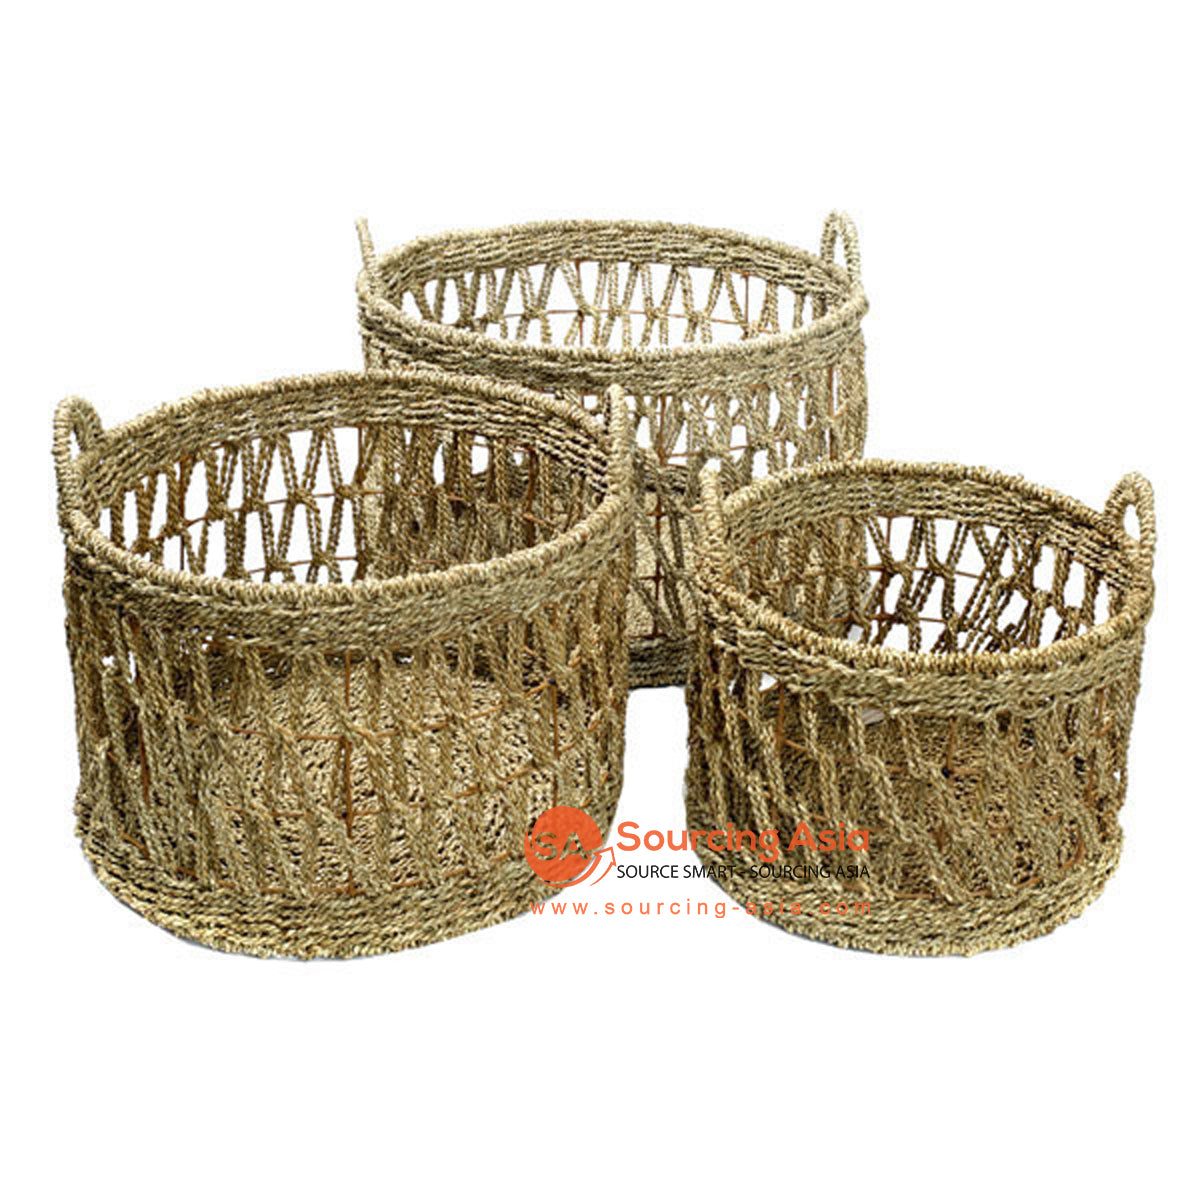 SHL168-4 SET OF THREE SEAGRASS BASKETS